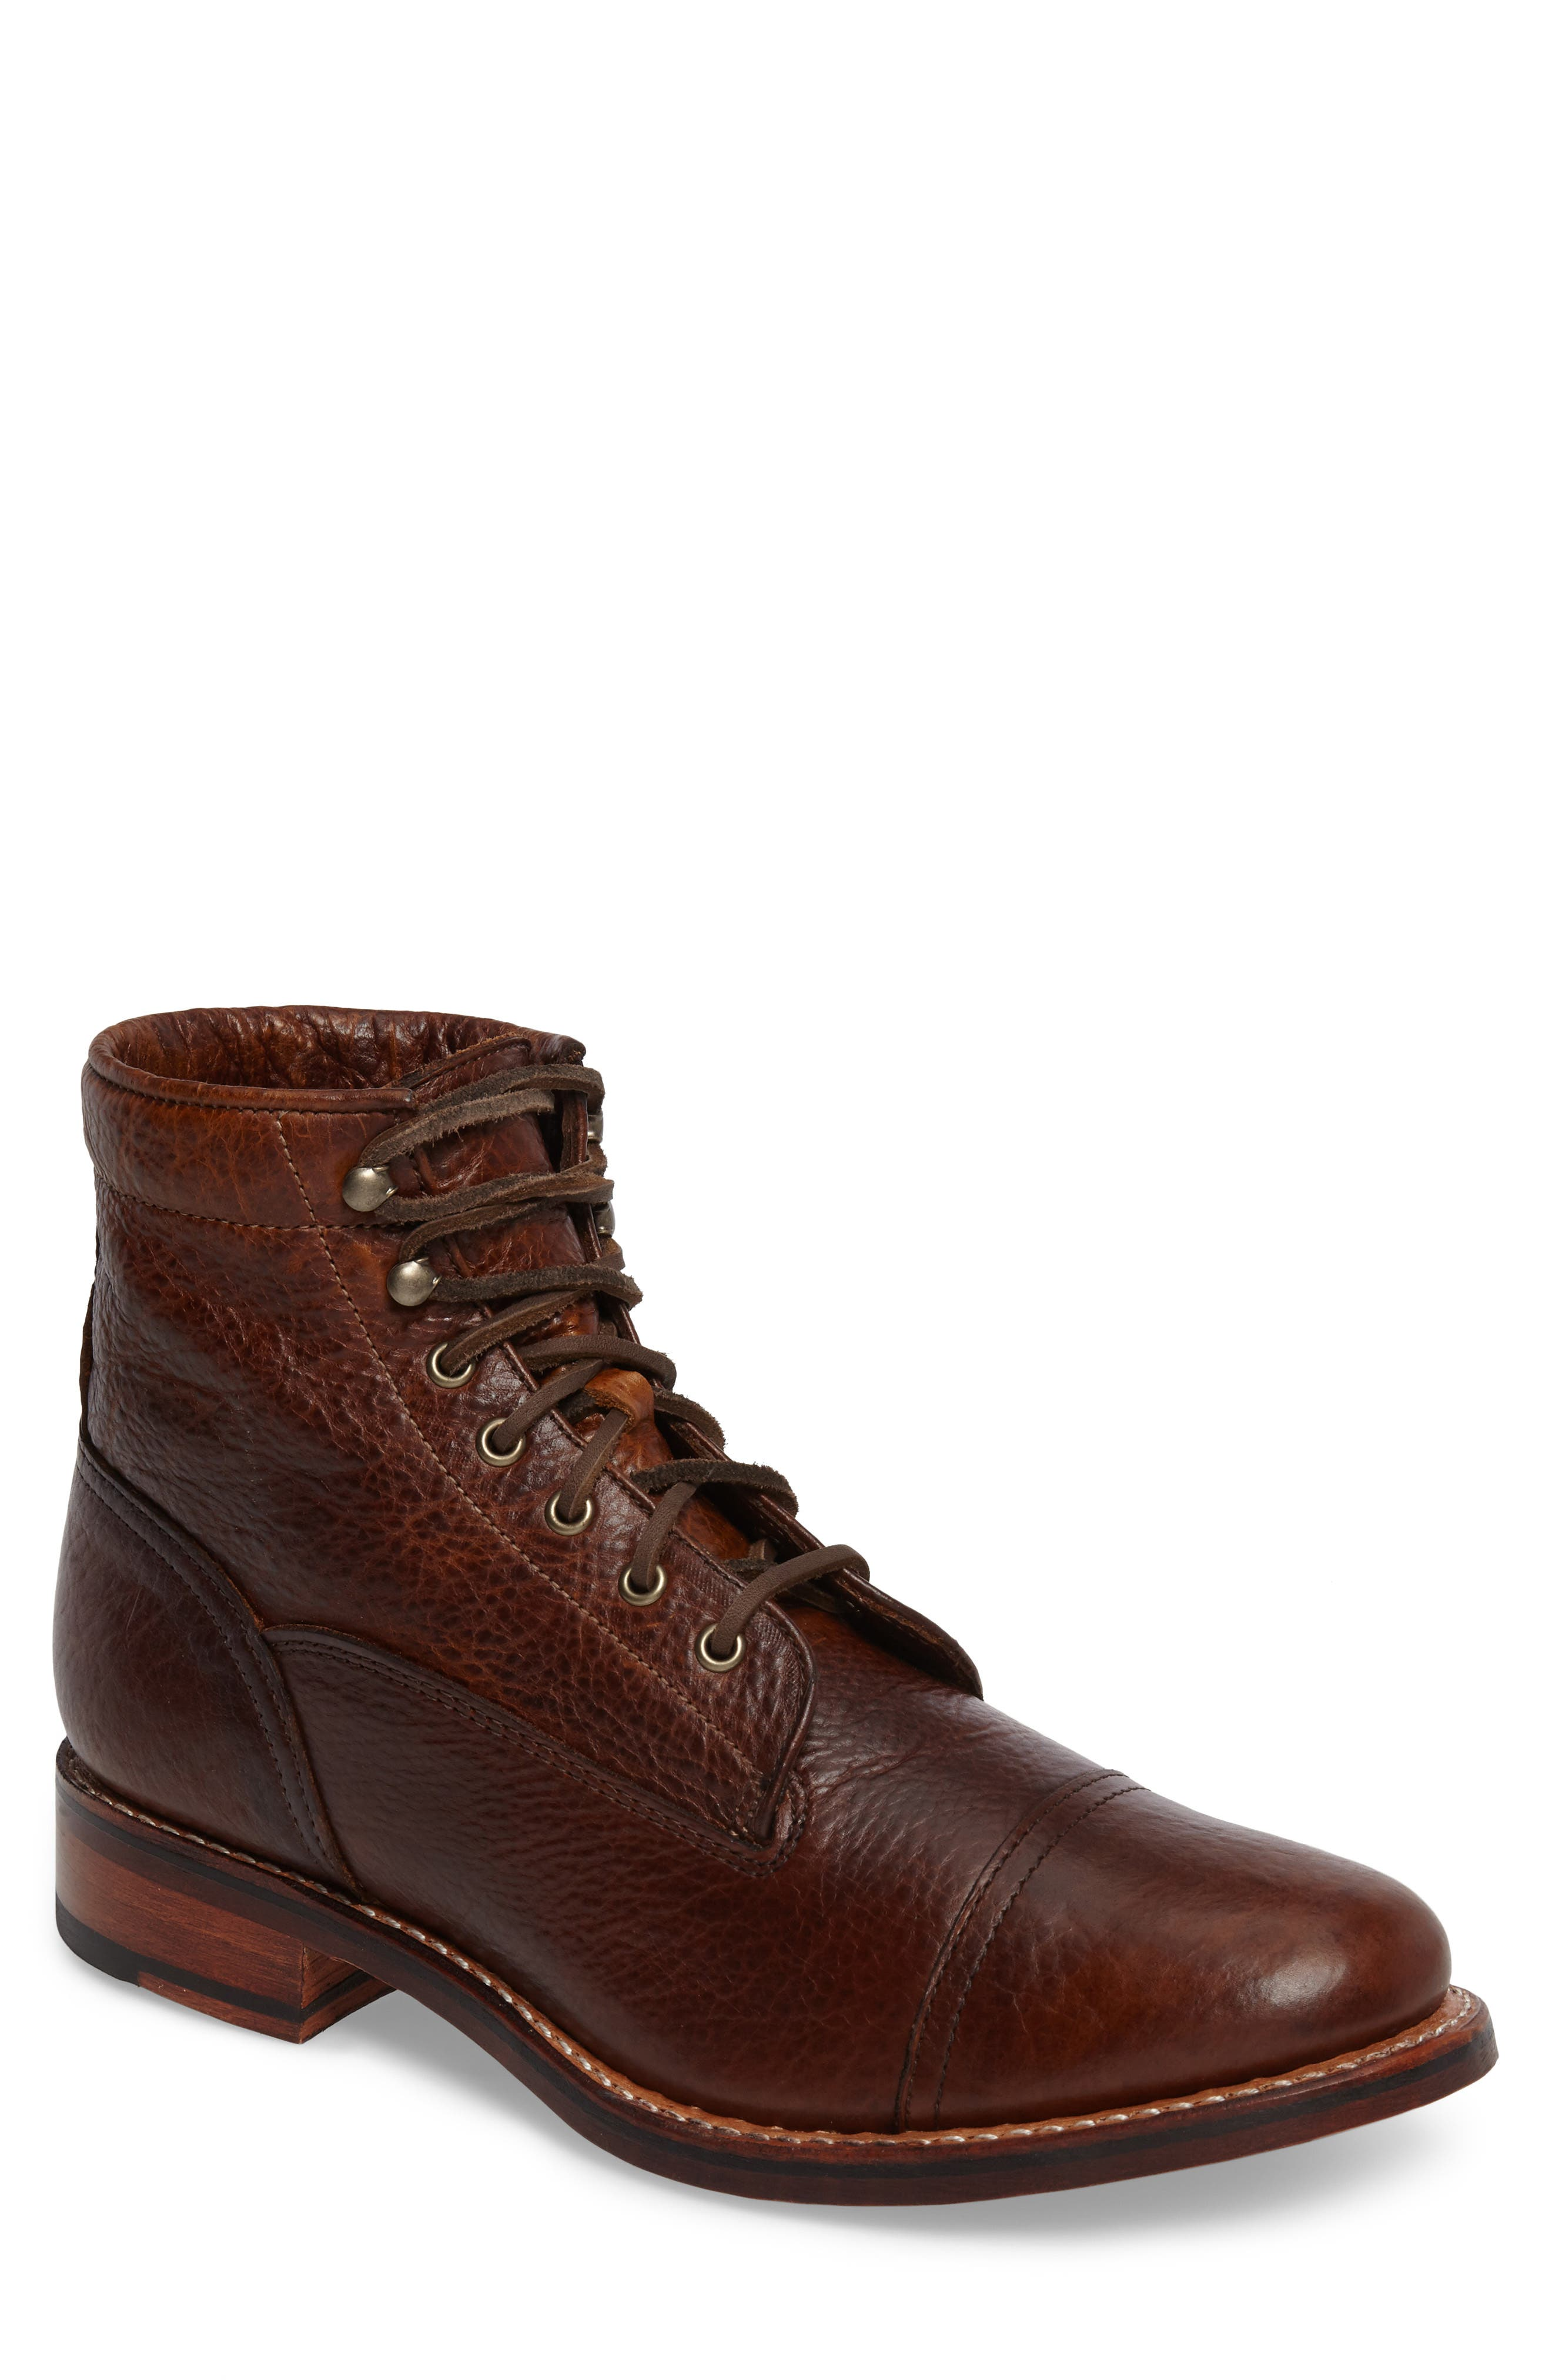 Ariat Highlands Cap Toe Boot,                         Main,                         color,